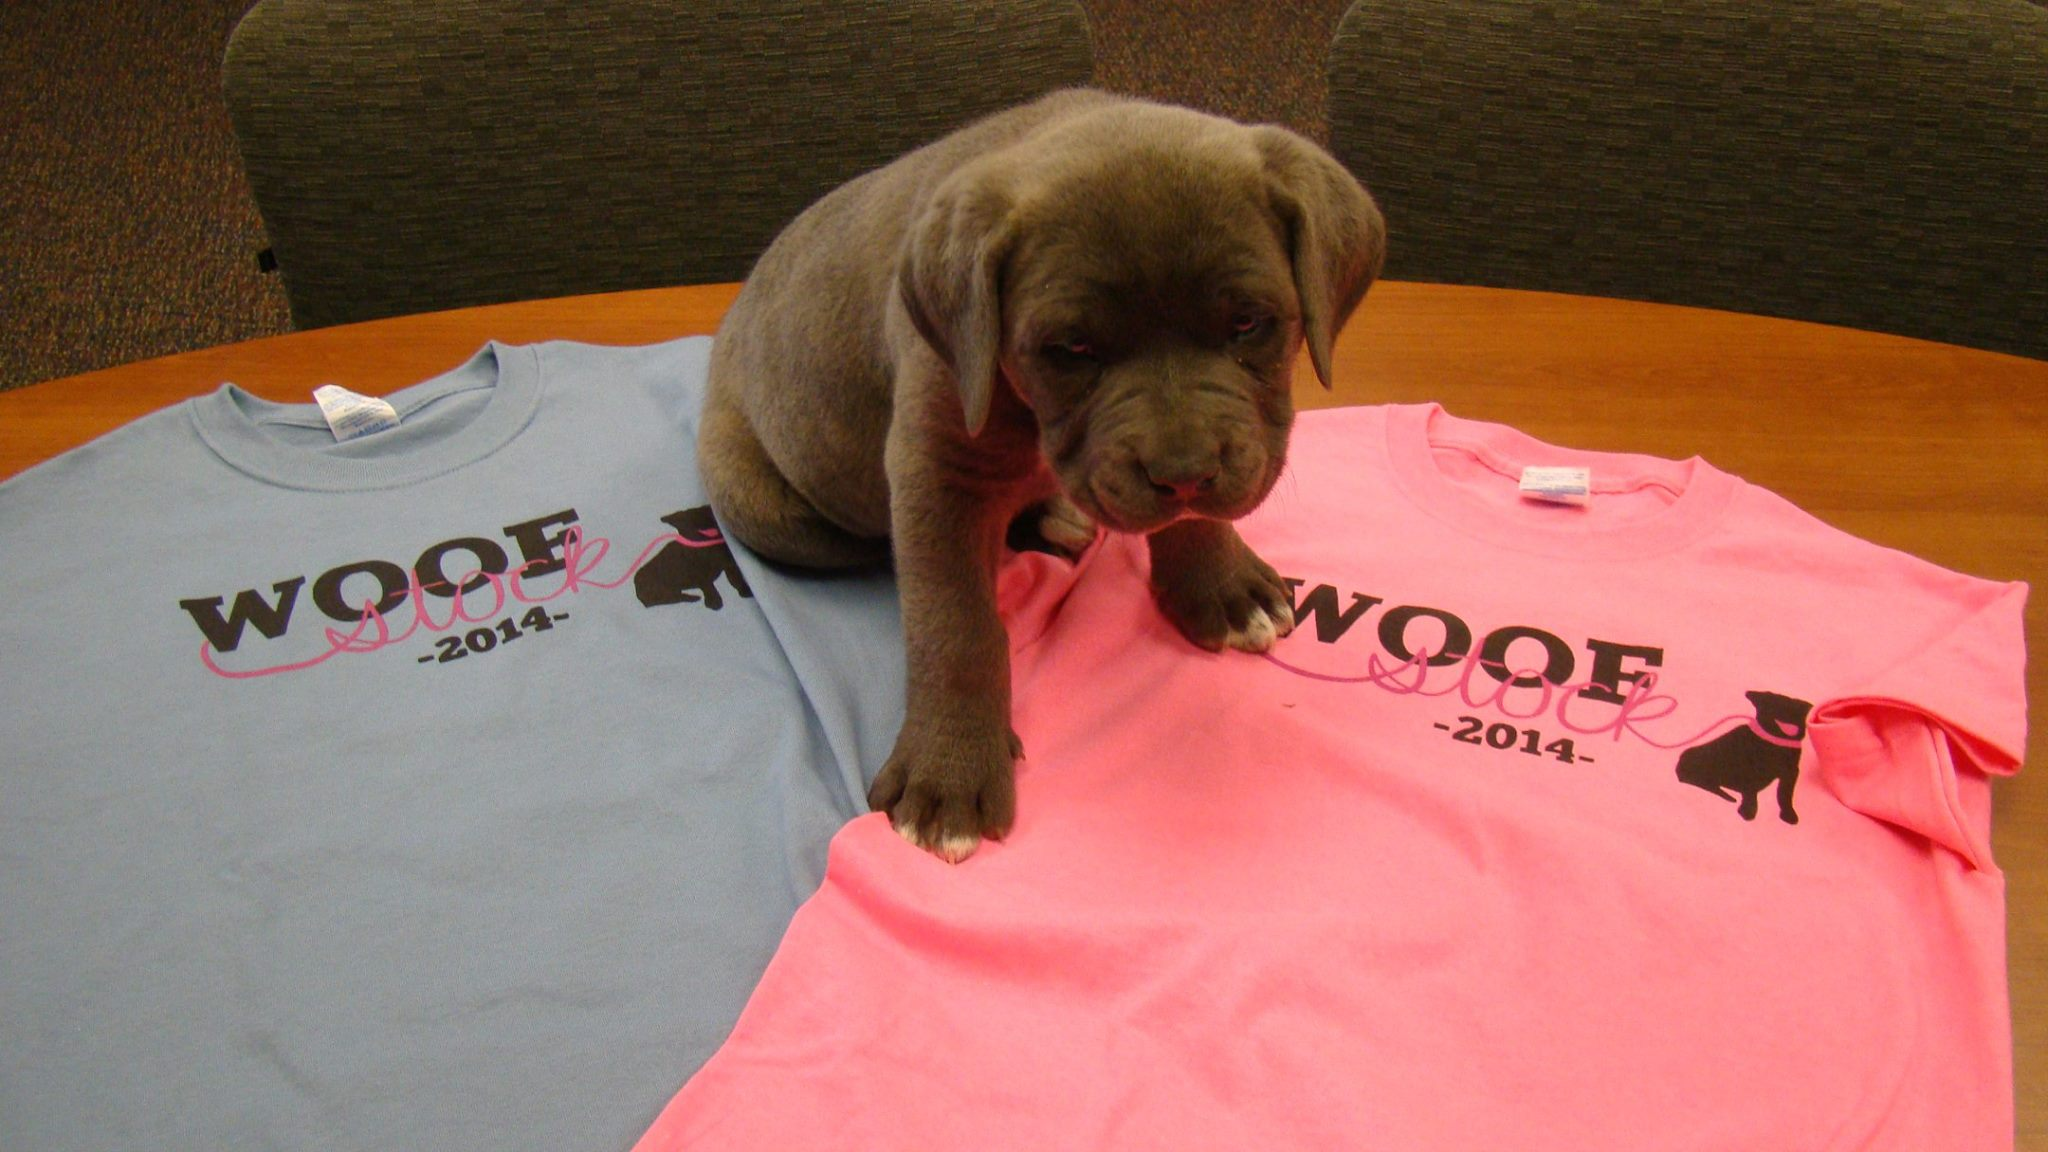 Puppy & Woofstock shirts